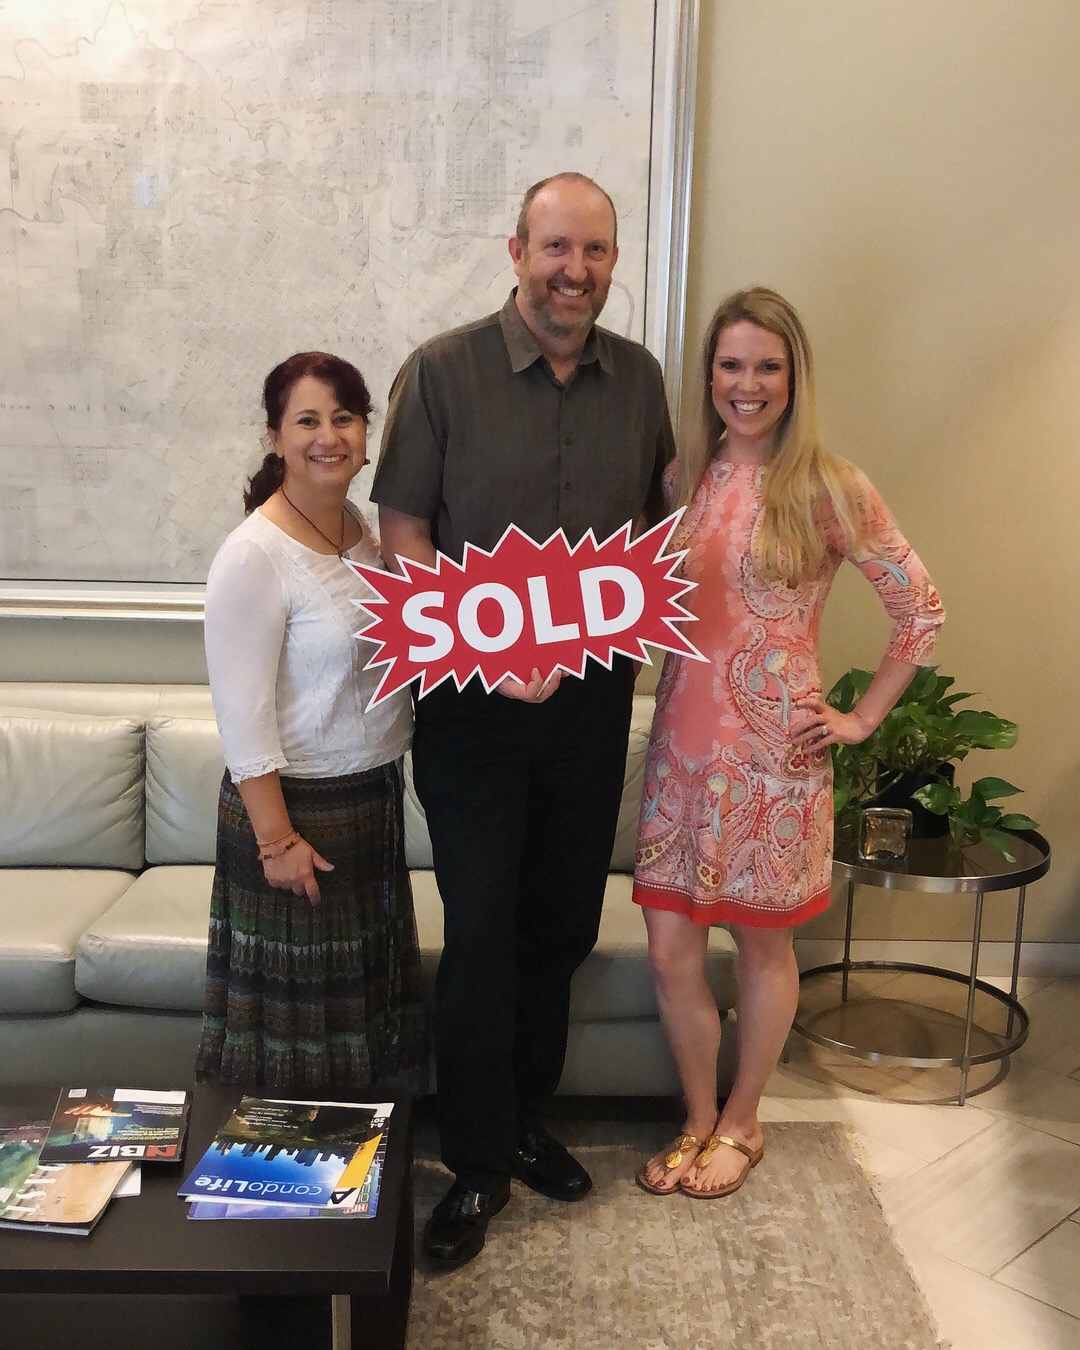 """Image of couple holding a red sign that says """"Sold"""", standing next to realtor Laura Bonck."""